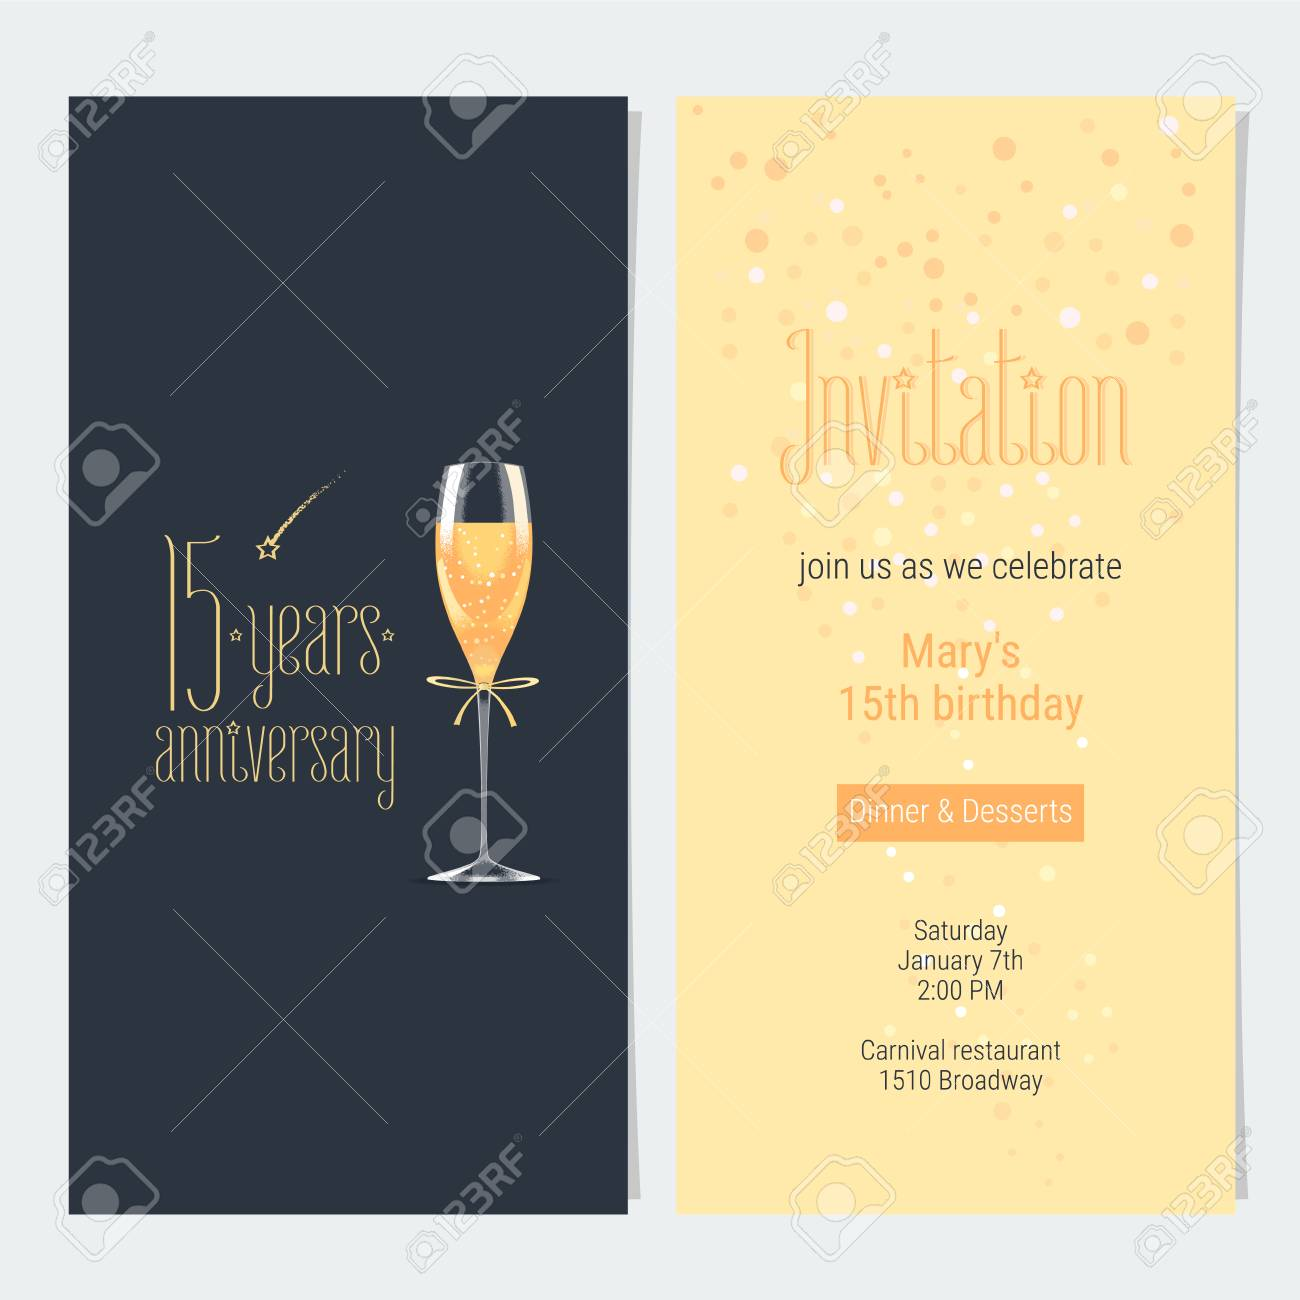 15 years anniversary invitation vector illustration design 15 years anniversary invitation vector illustration design element with icon with age lettering and stopboris Choice Image